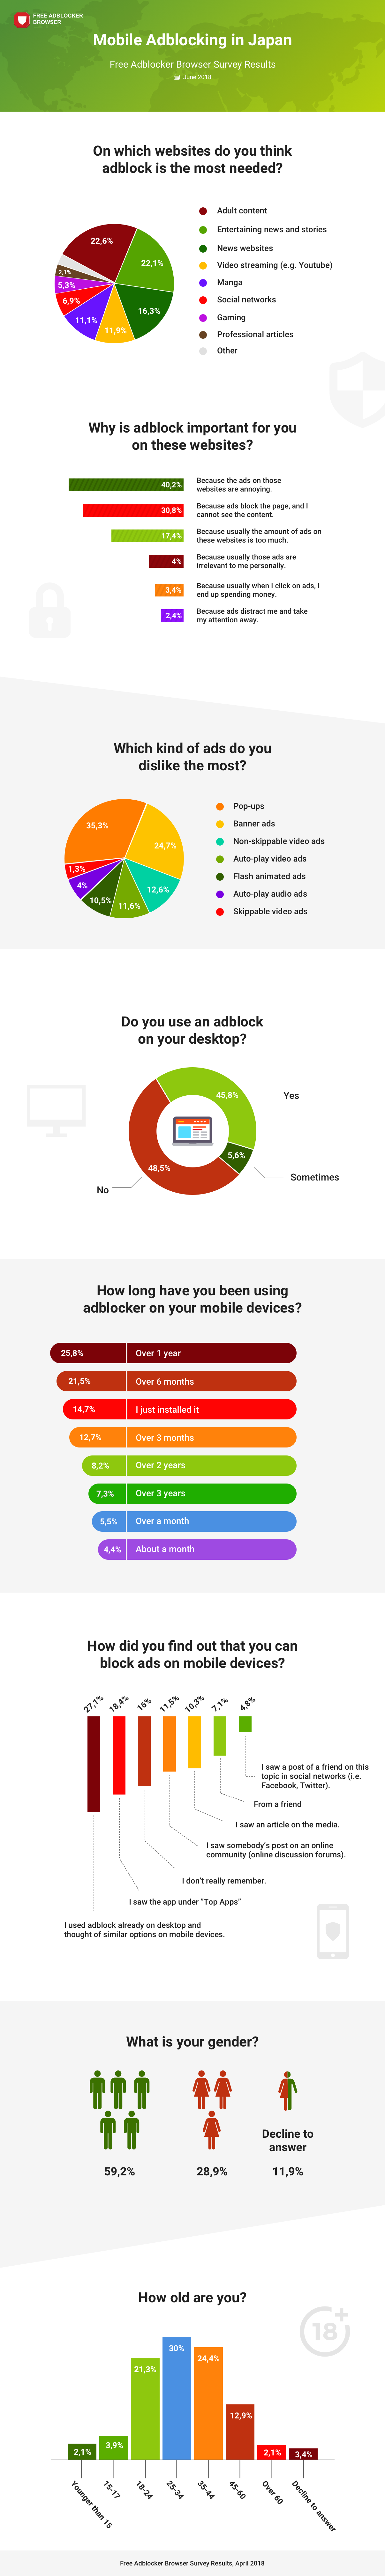 Mobile Adblock in Japan: Results of the Recent Study